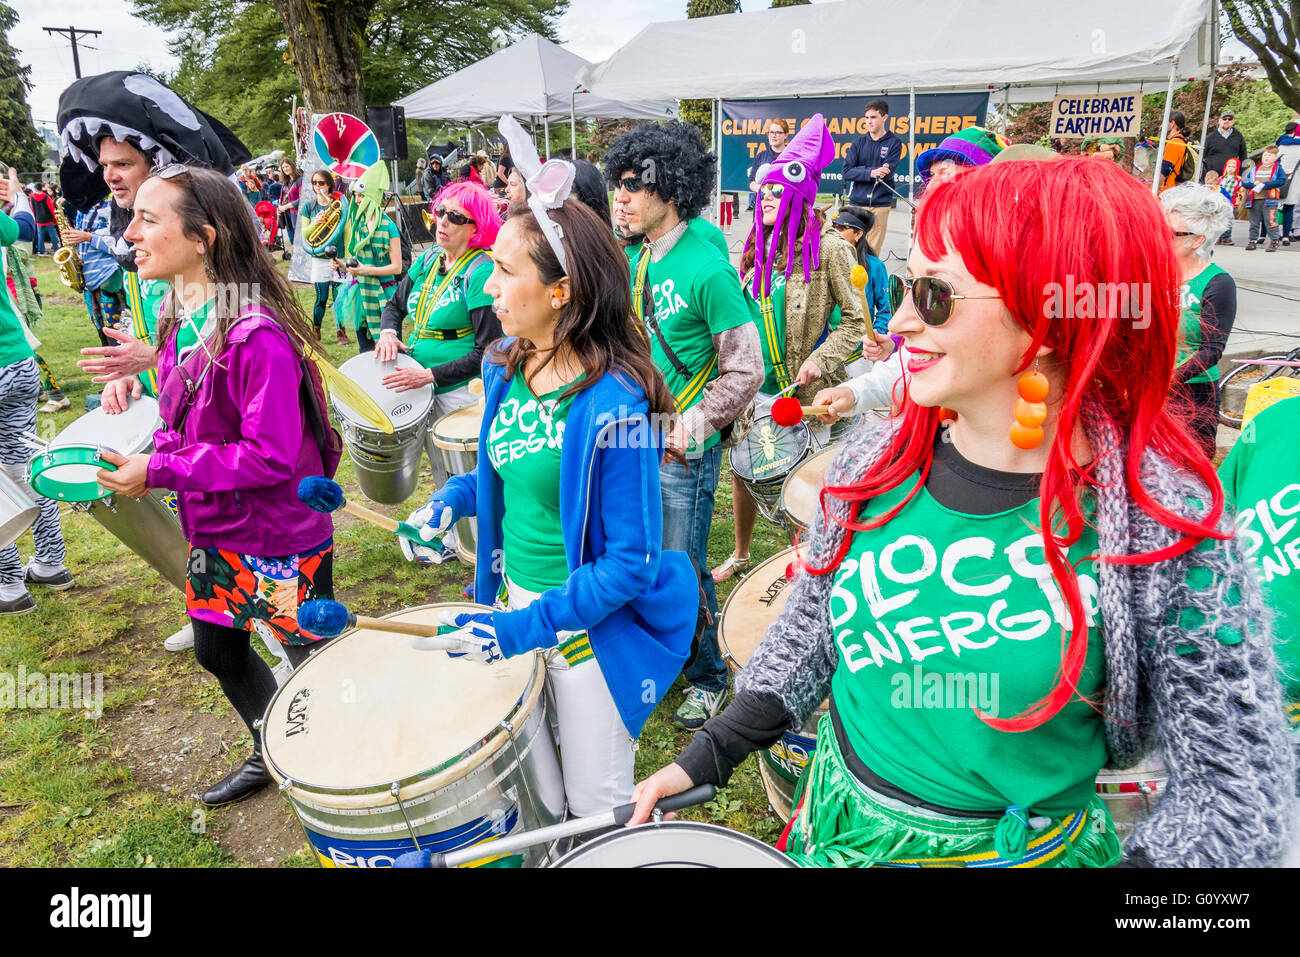 Drum group Bloco Energia perform at Earth Day Rally, Vancouver, British Columbia, Canada - Stock Image